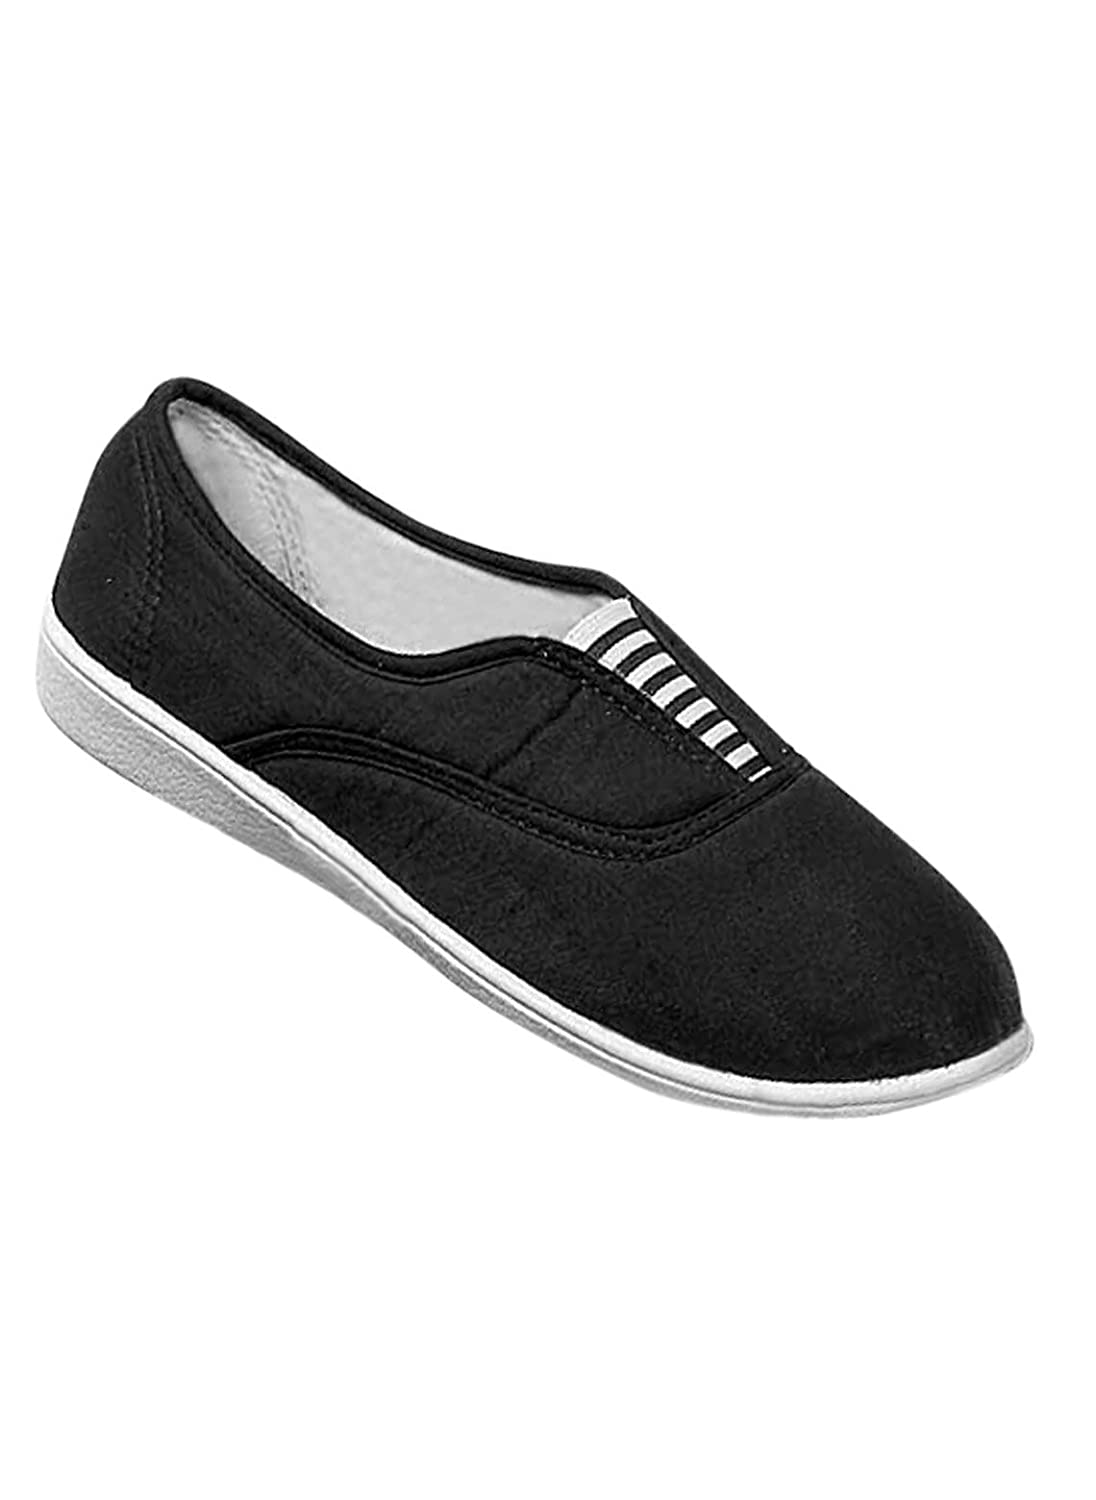 Carefree Canvas Slip-Ons